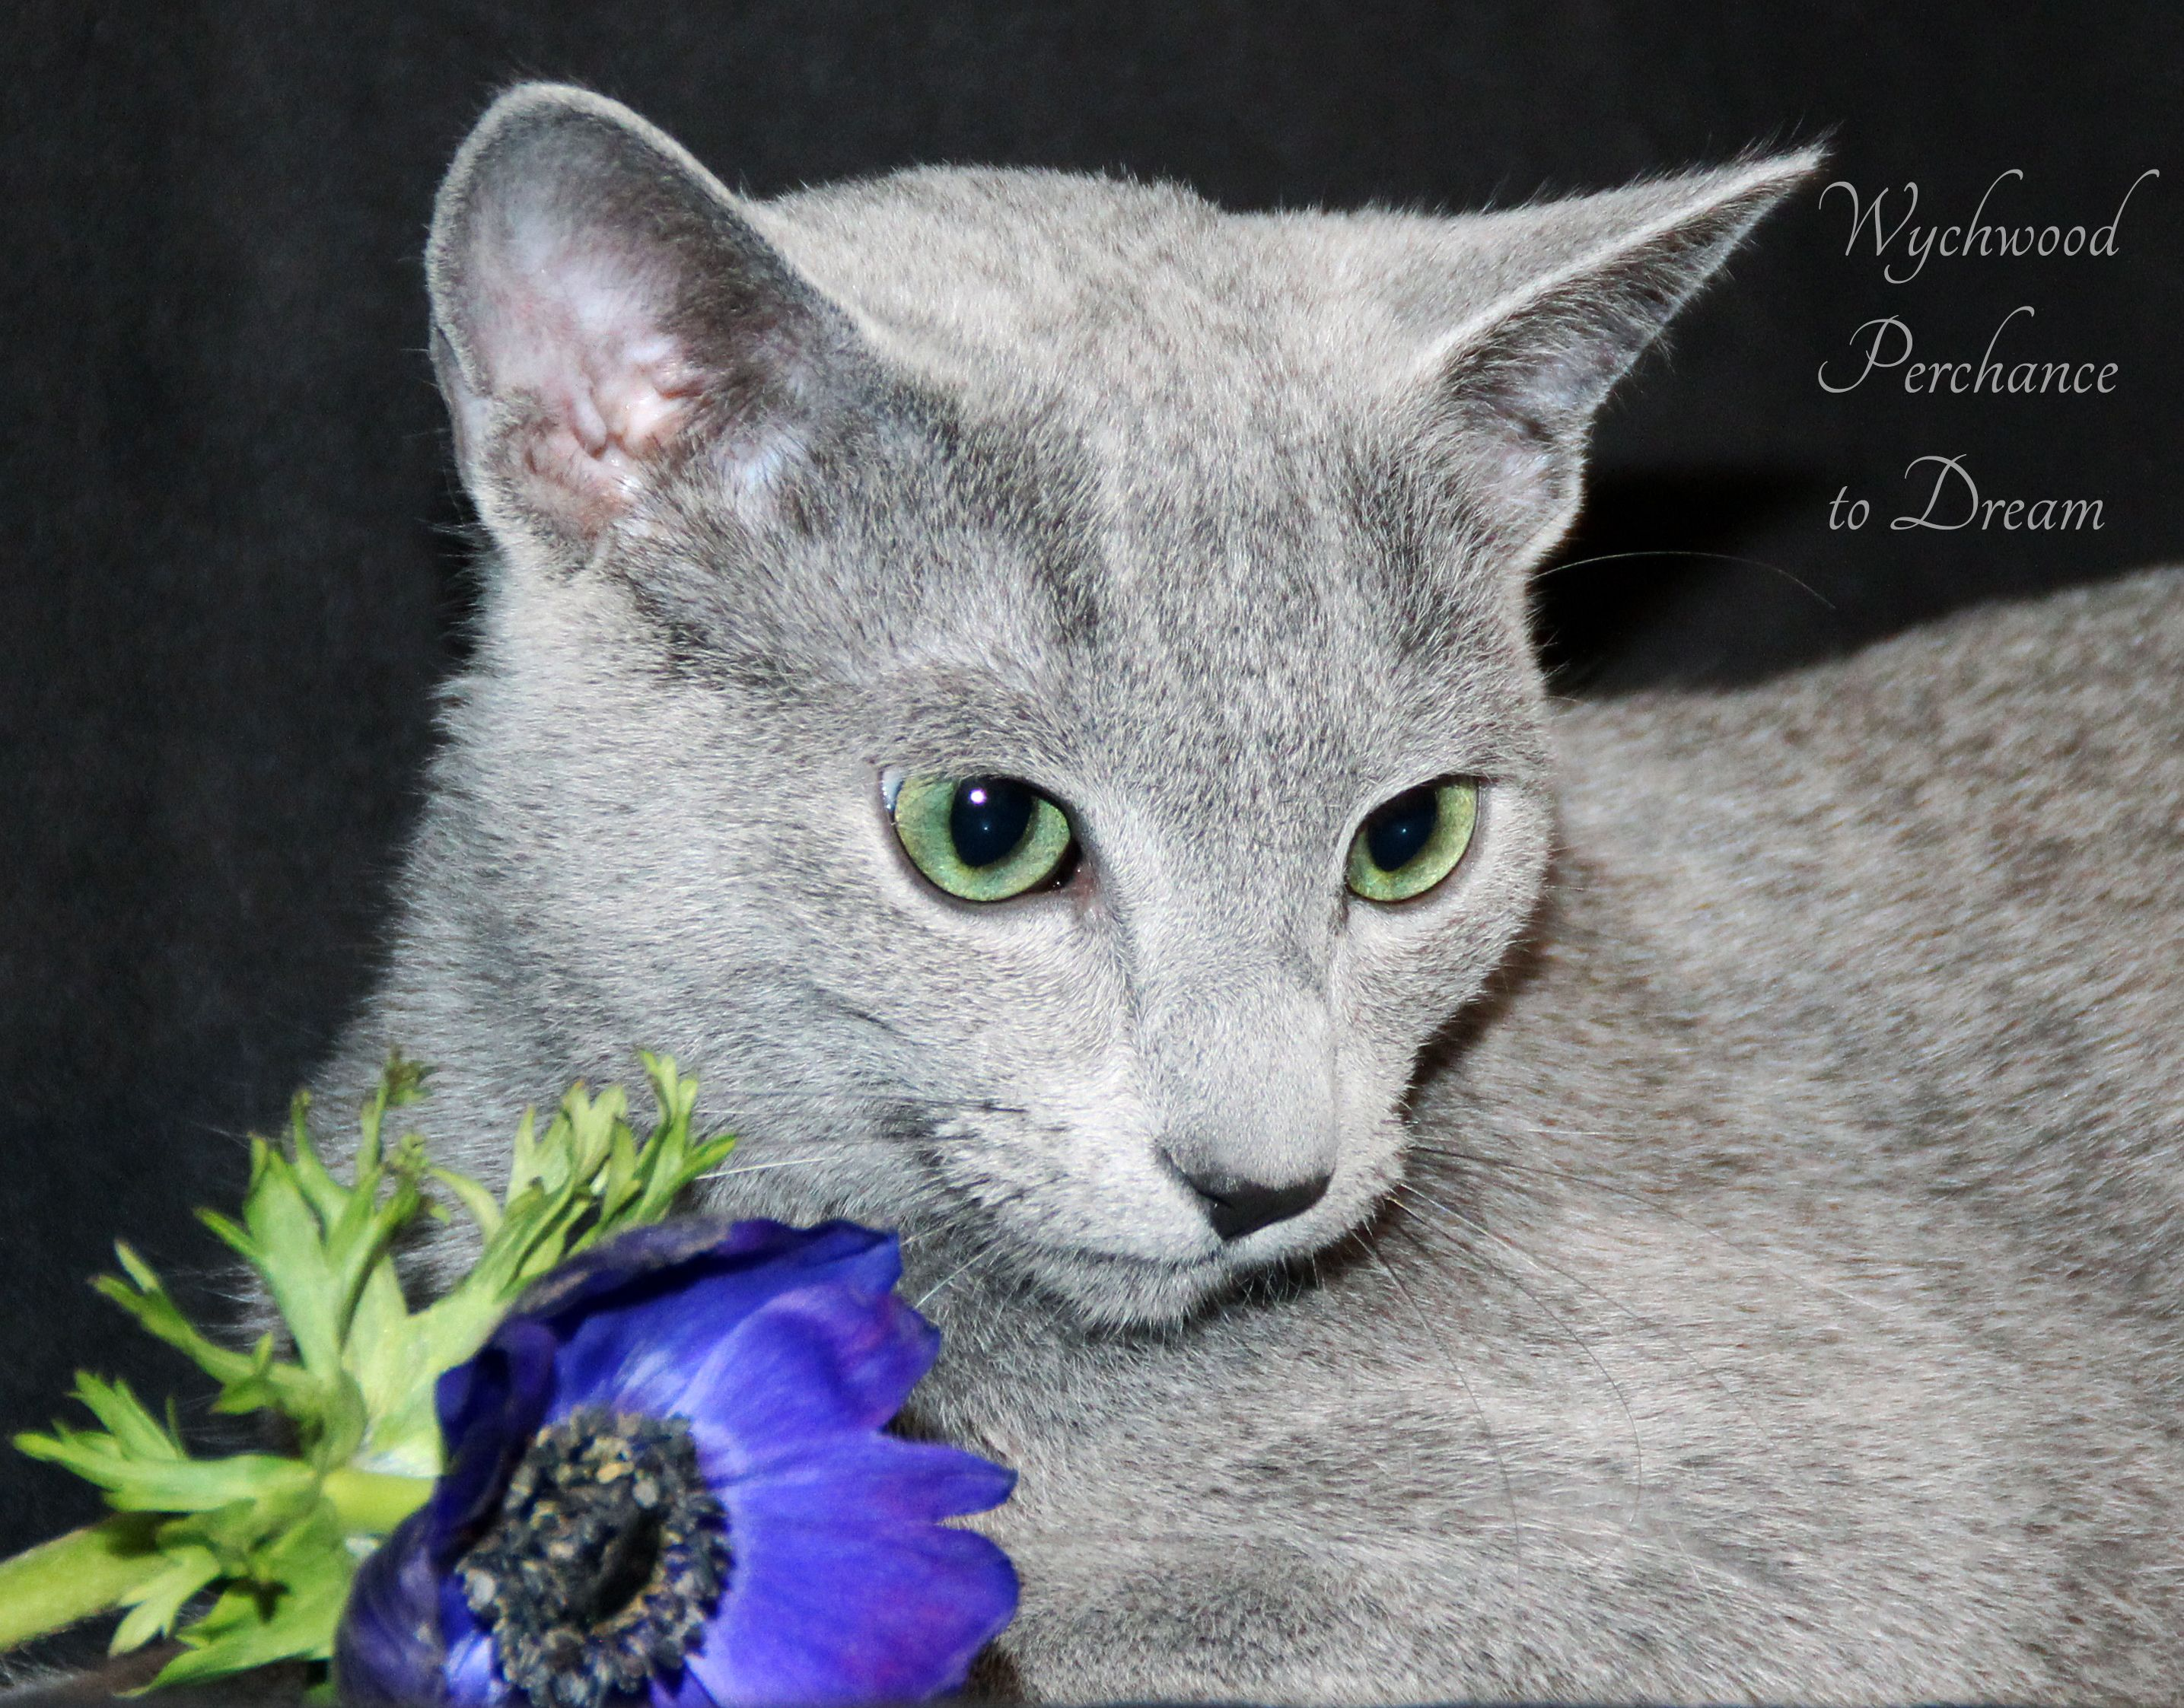 Russian Blue cats are gentle and soft by nature and Dreamy proves